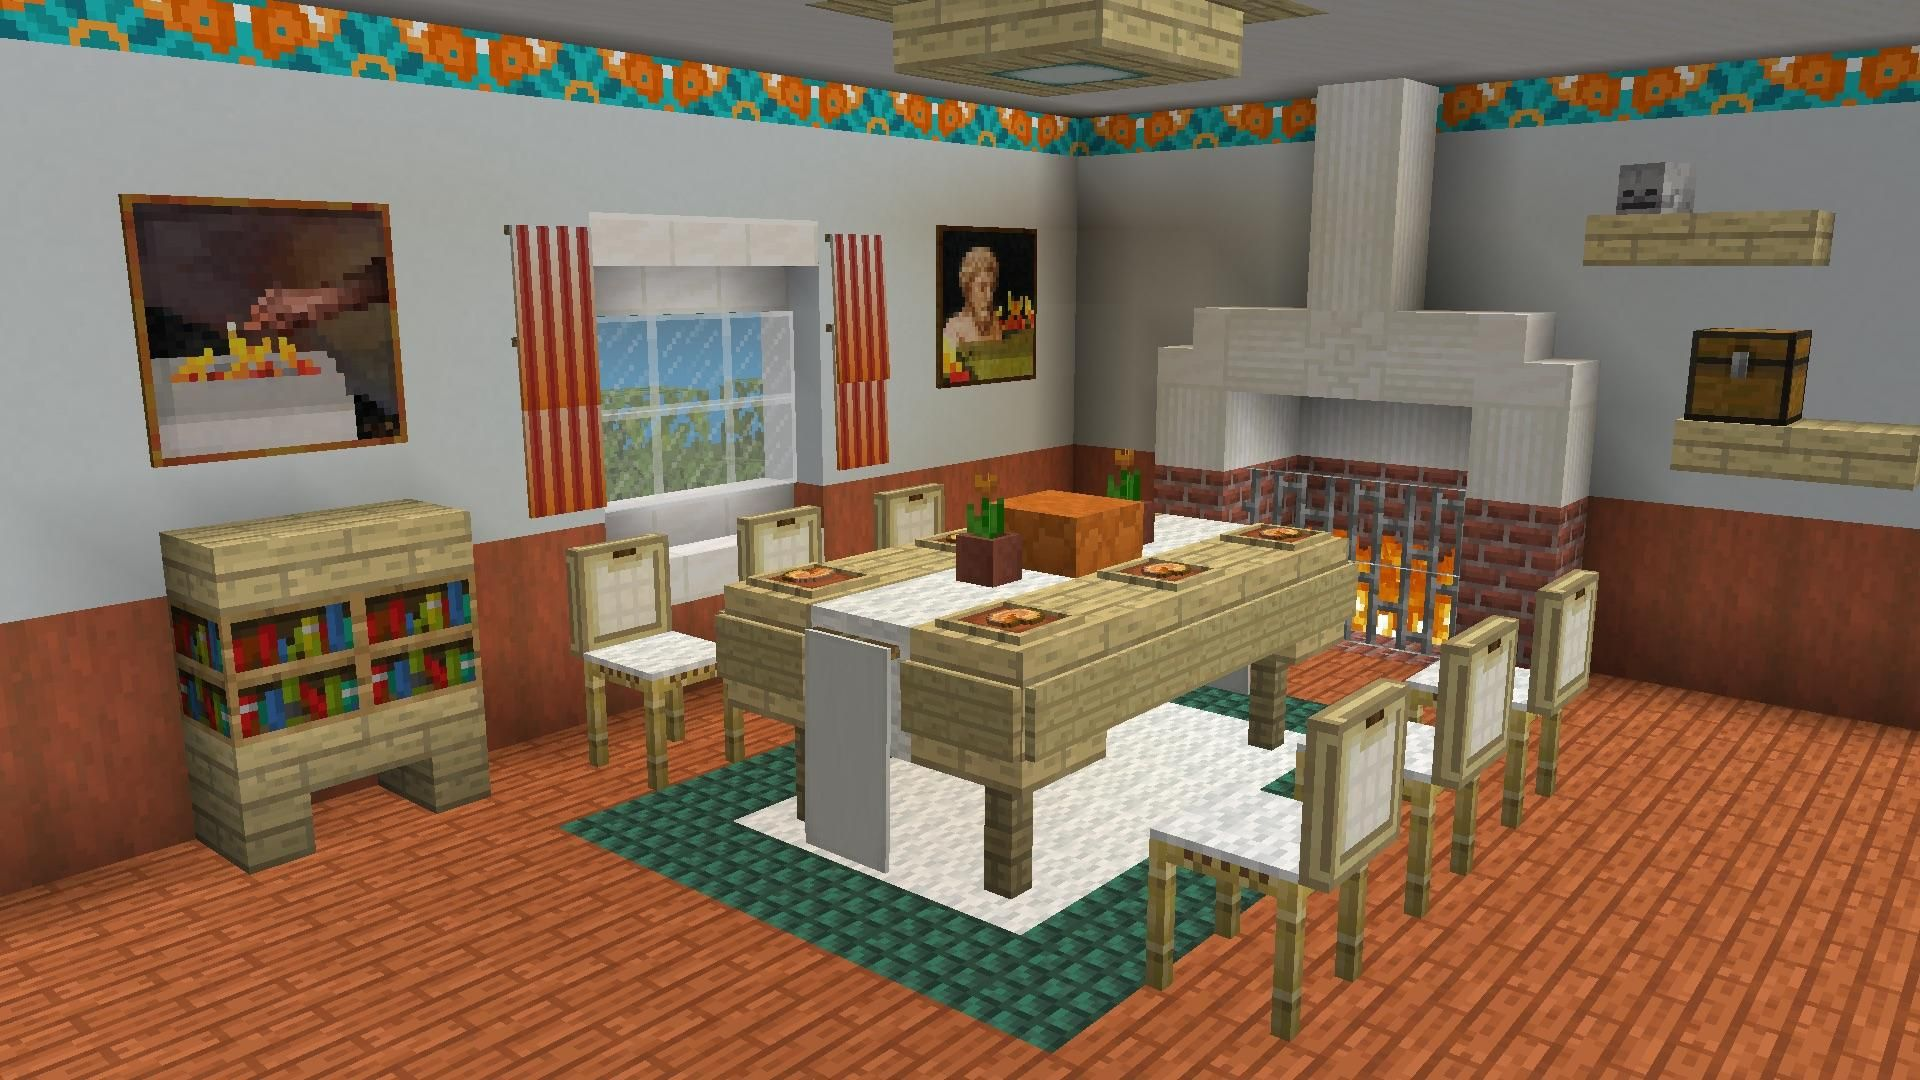 New Dining Room What Do You Guys Think Https I Redd It Eyvwyby71r321 Jpg Minecraft Decorations Minecraft Modern Minecraft Room